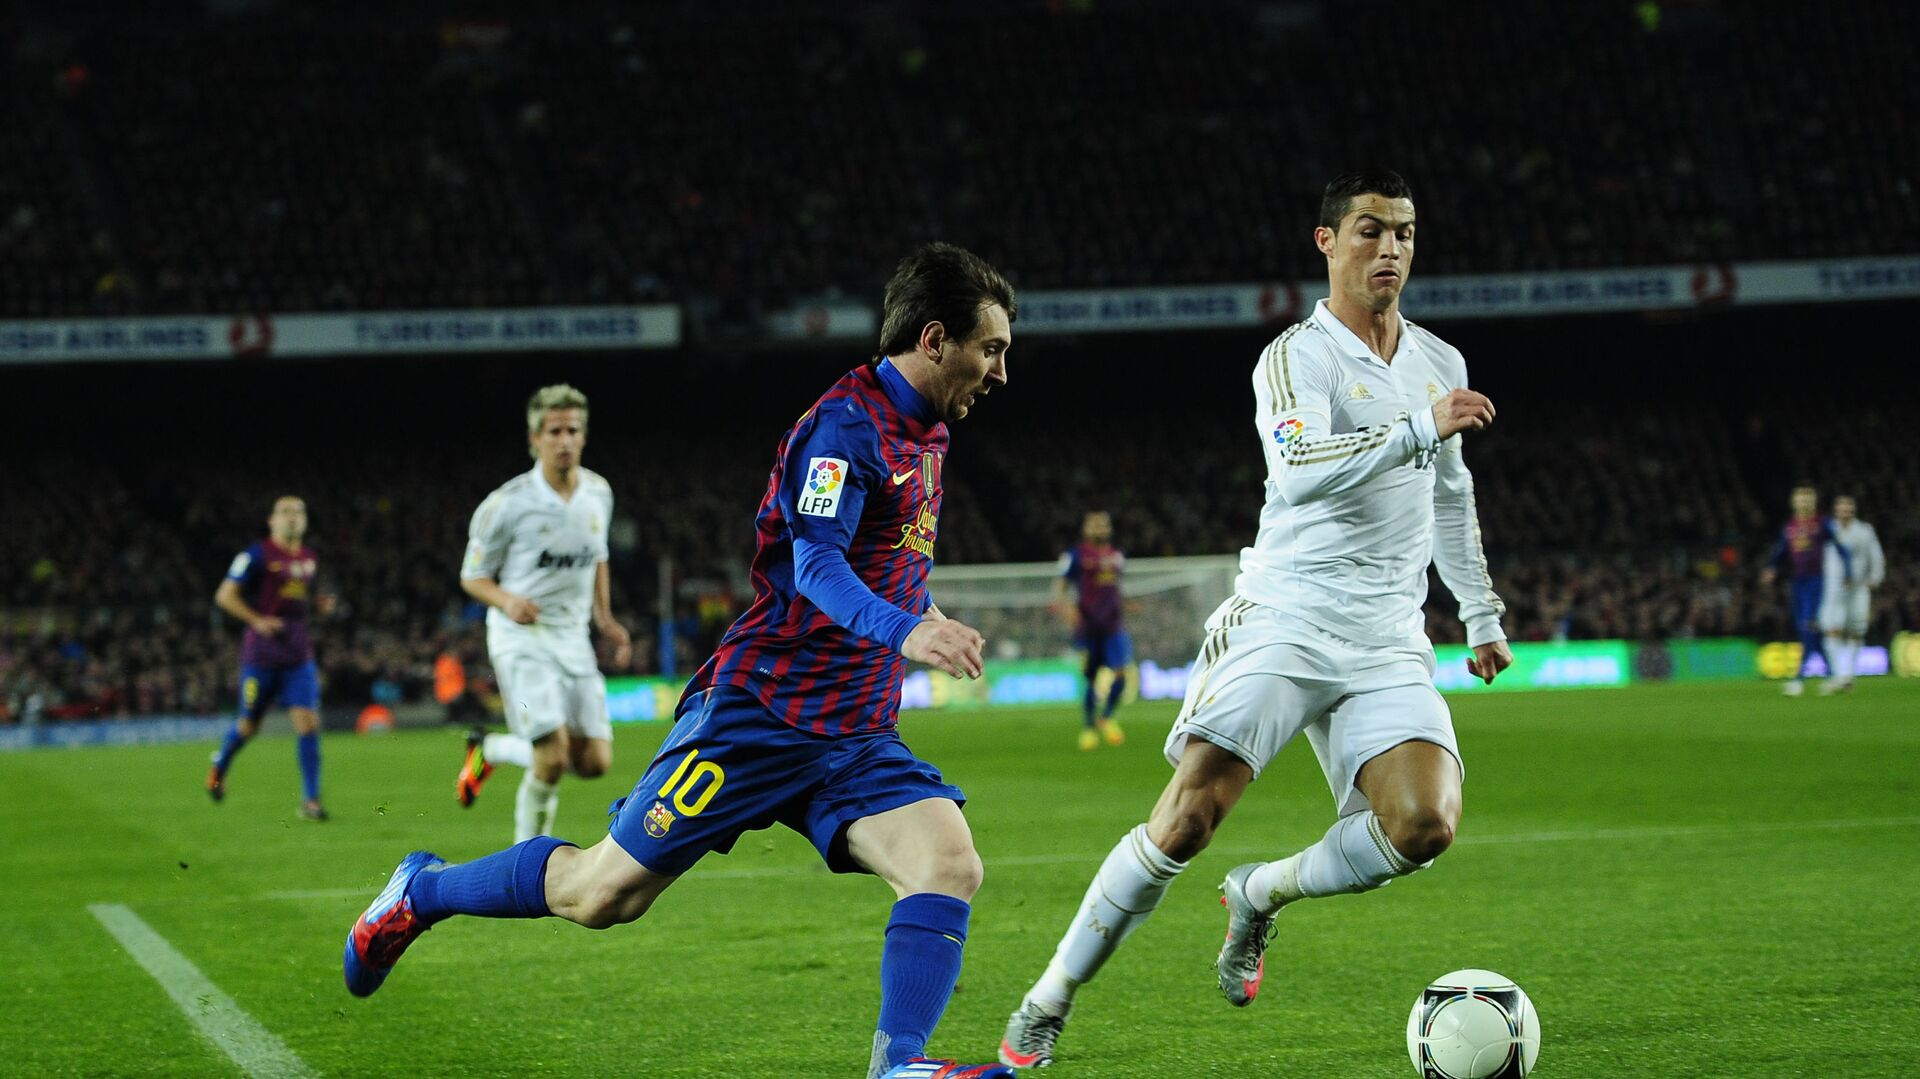 FC Barcelona's Lionel Messi, from Argentina, left, duels for the ball against Real Madrid's Cristiano Ronaldo, from Portugal, during their quarterfinal, second leg, Copa del Rey soccer match at the Camp Nou stadium, in Barcelona, Spain, Wednesday, Jan. 25, 2012 - Sputnik International, 1920, 14.09.2021